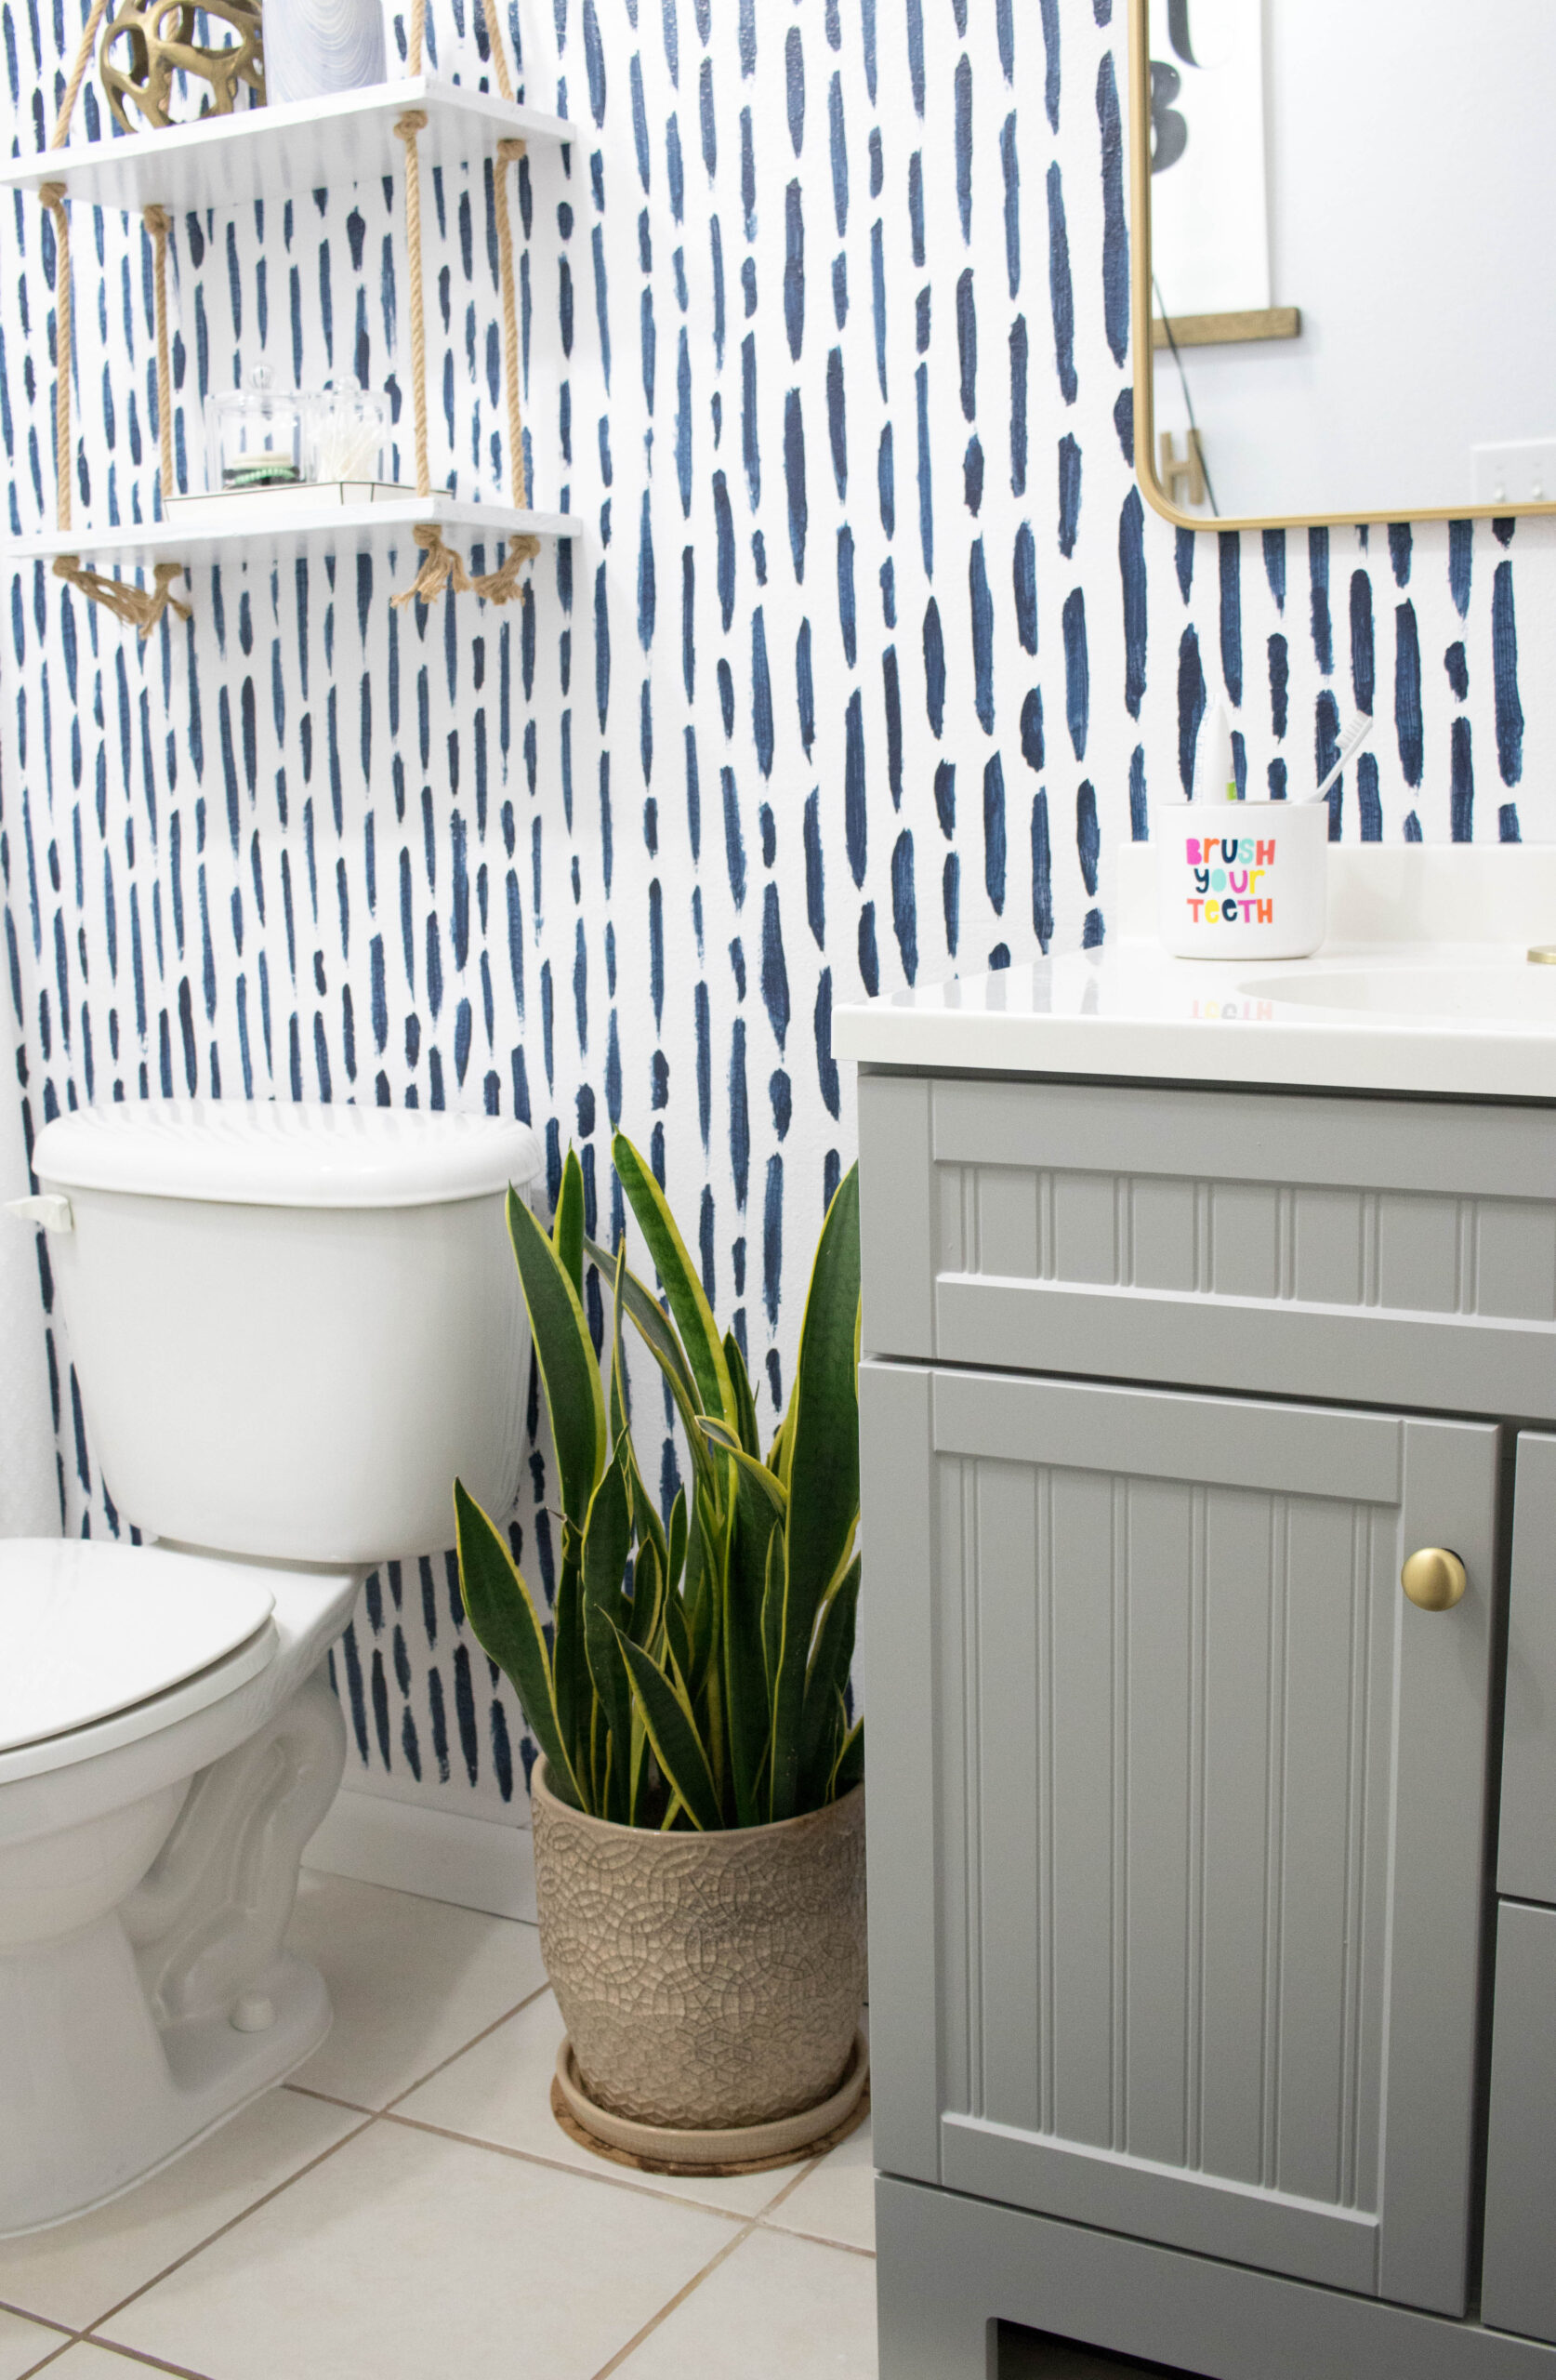 diy guest bathroom refresh #guestbathroom #bathroomremodel